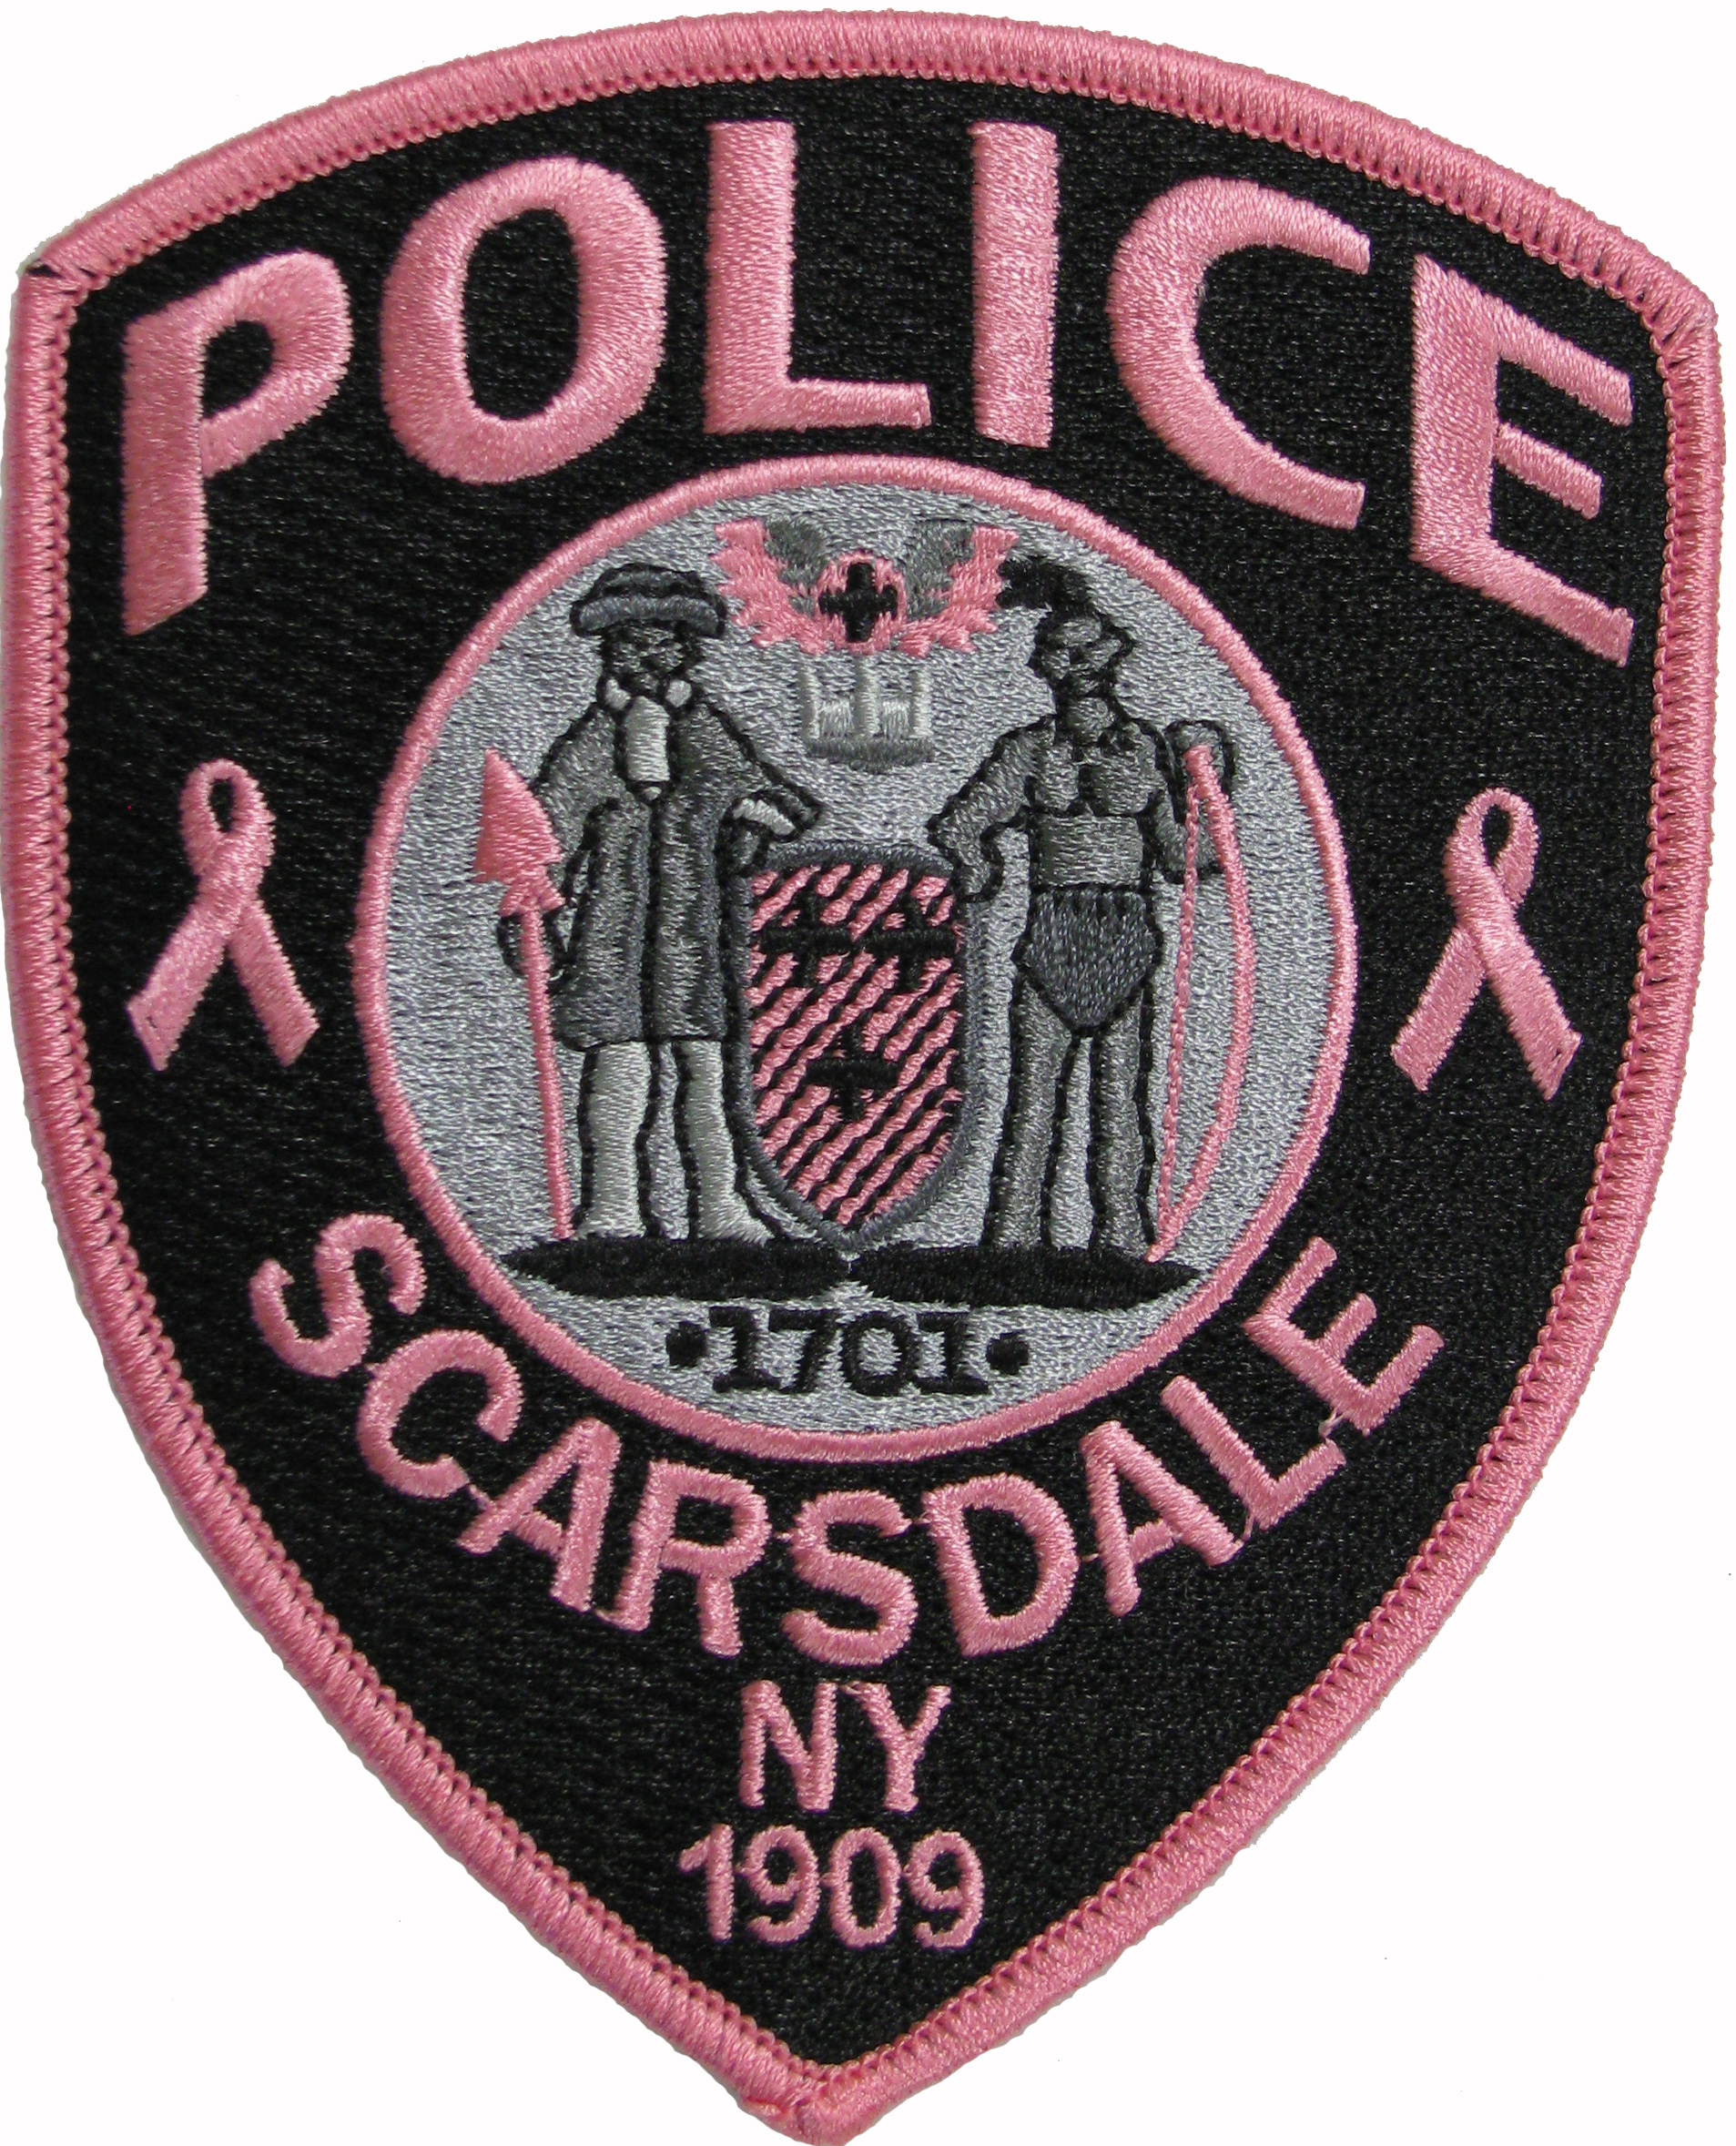 Scarsdale PD Pink Patch.jpg